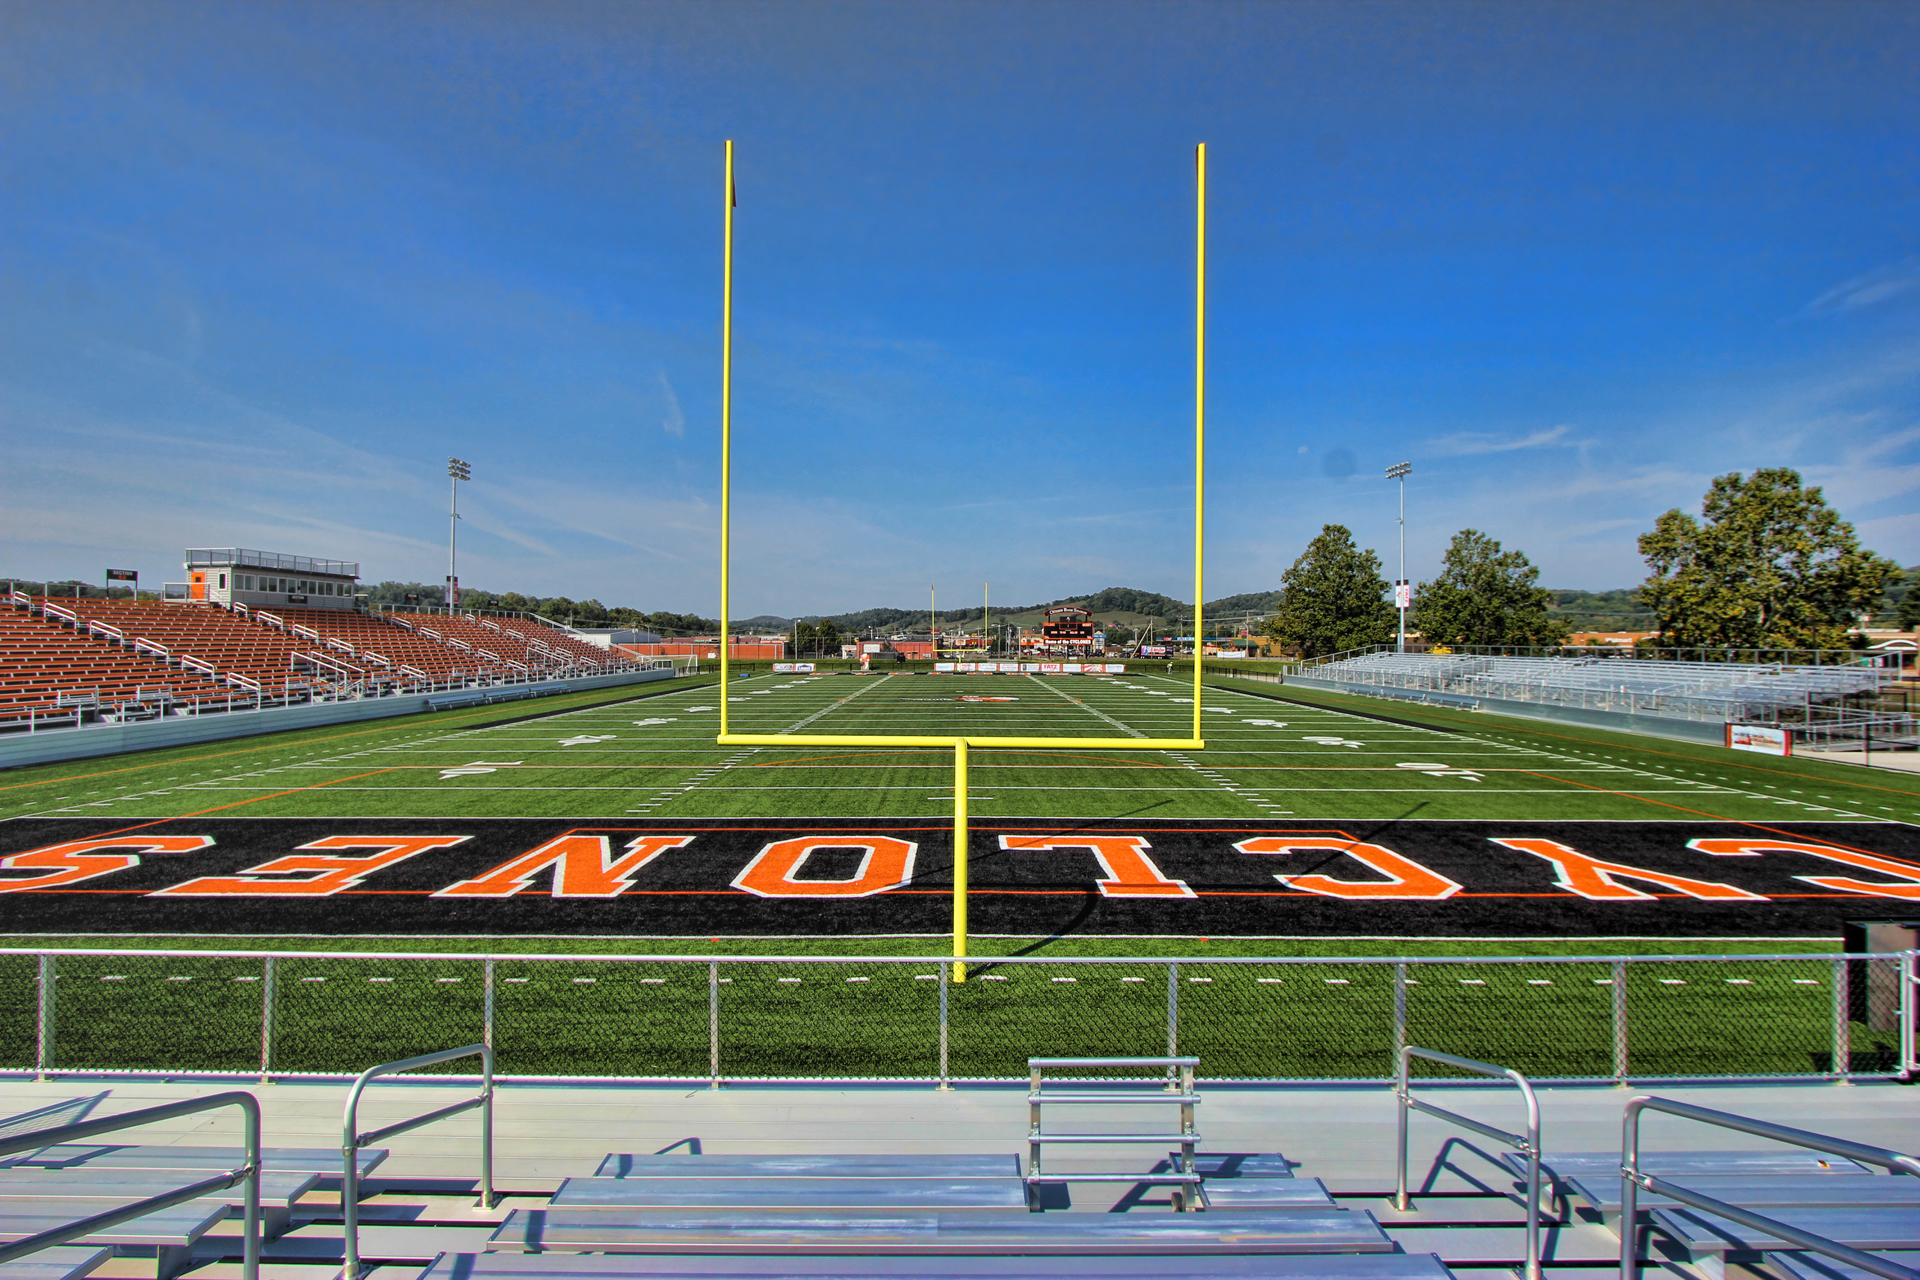 Band Stands & End Zone